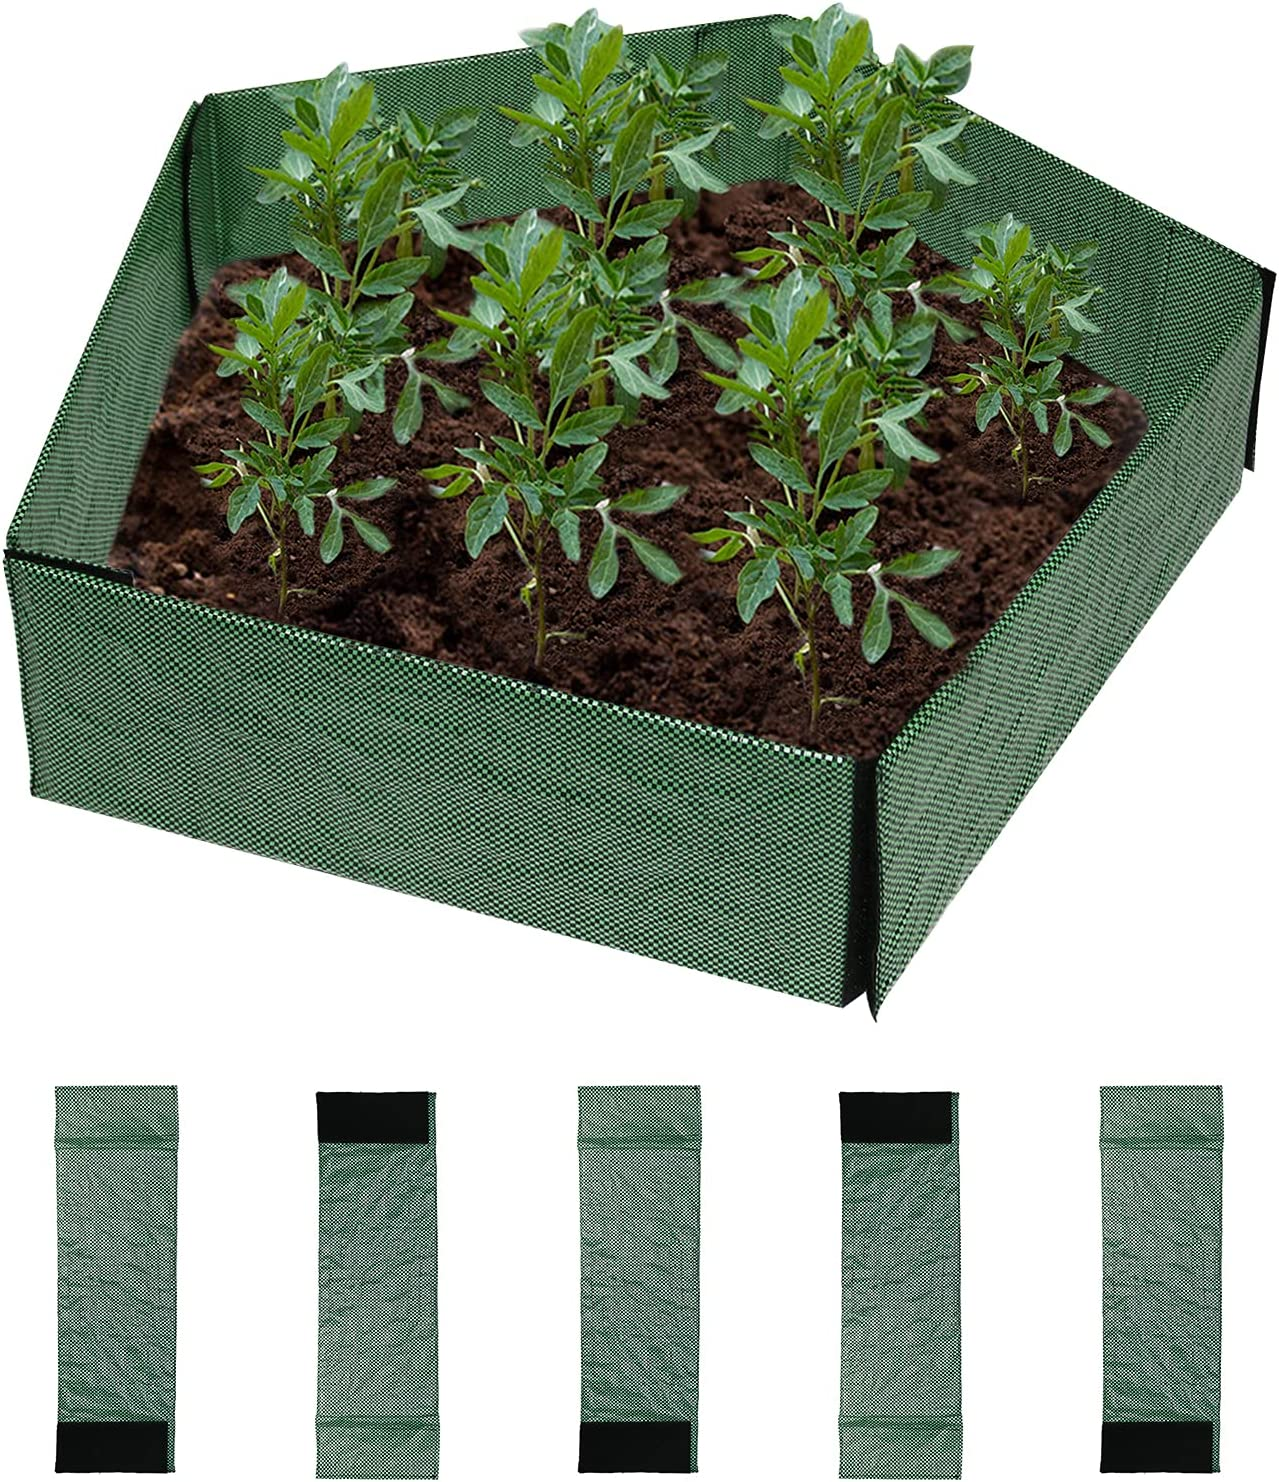 CestMall 5PCS Garden Fence Panels Raised Garden Beds for Vegetables Flowers Plants, DIY Decoration Free Assembly Easy to Install Plant Containers, 19.7x6.3inch Green